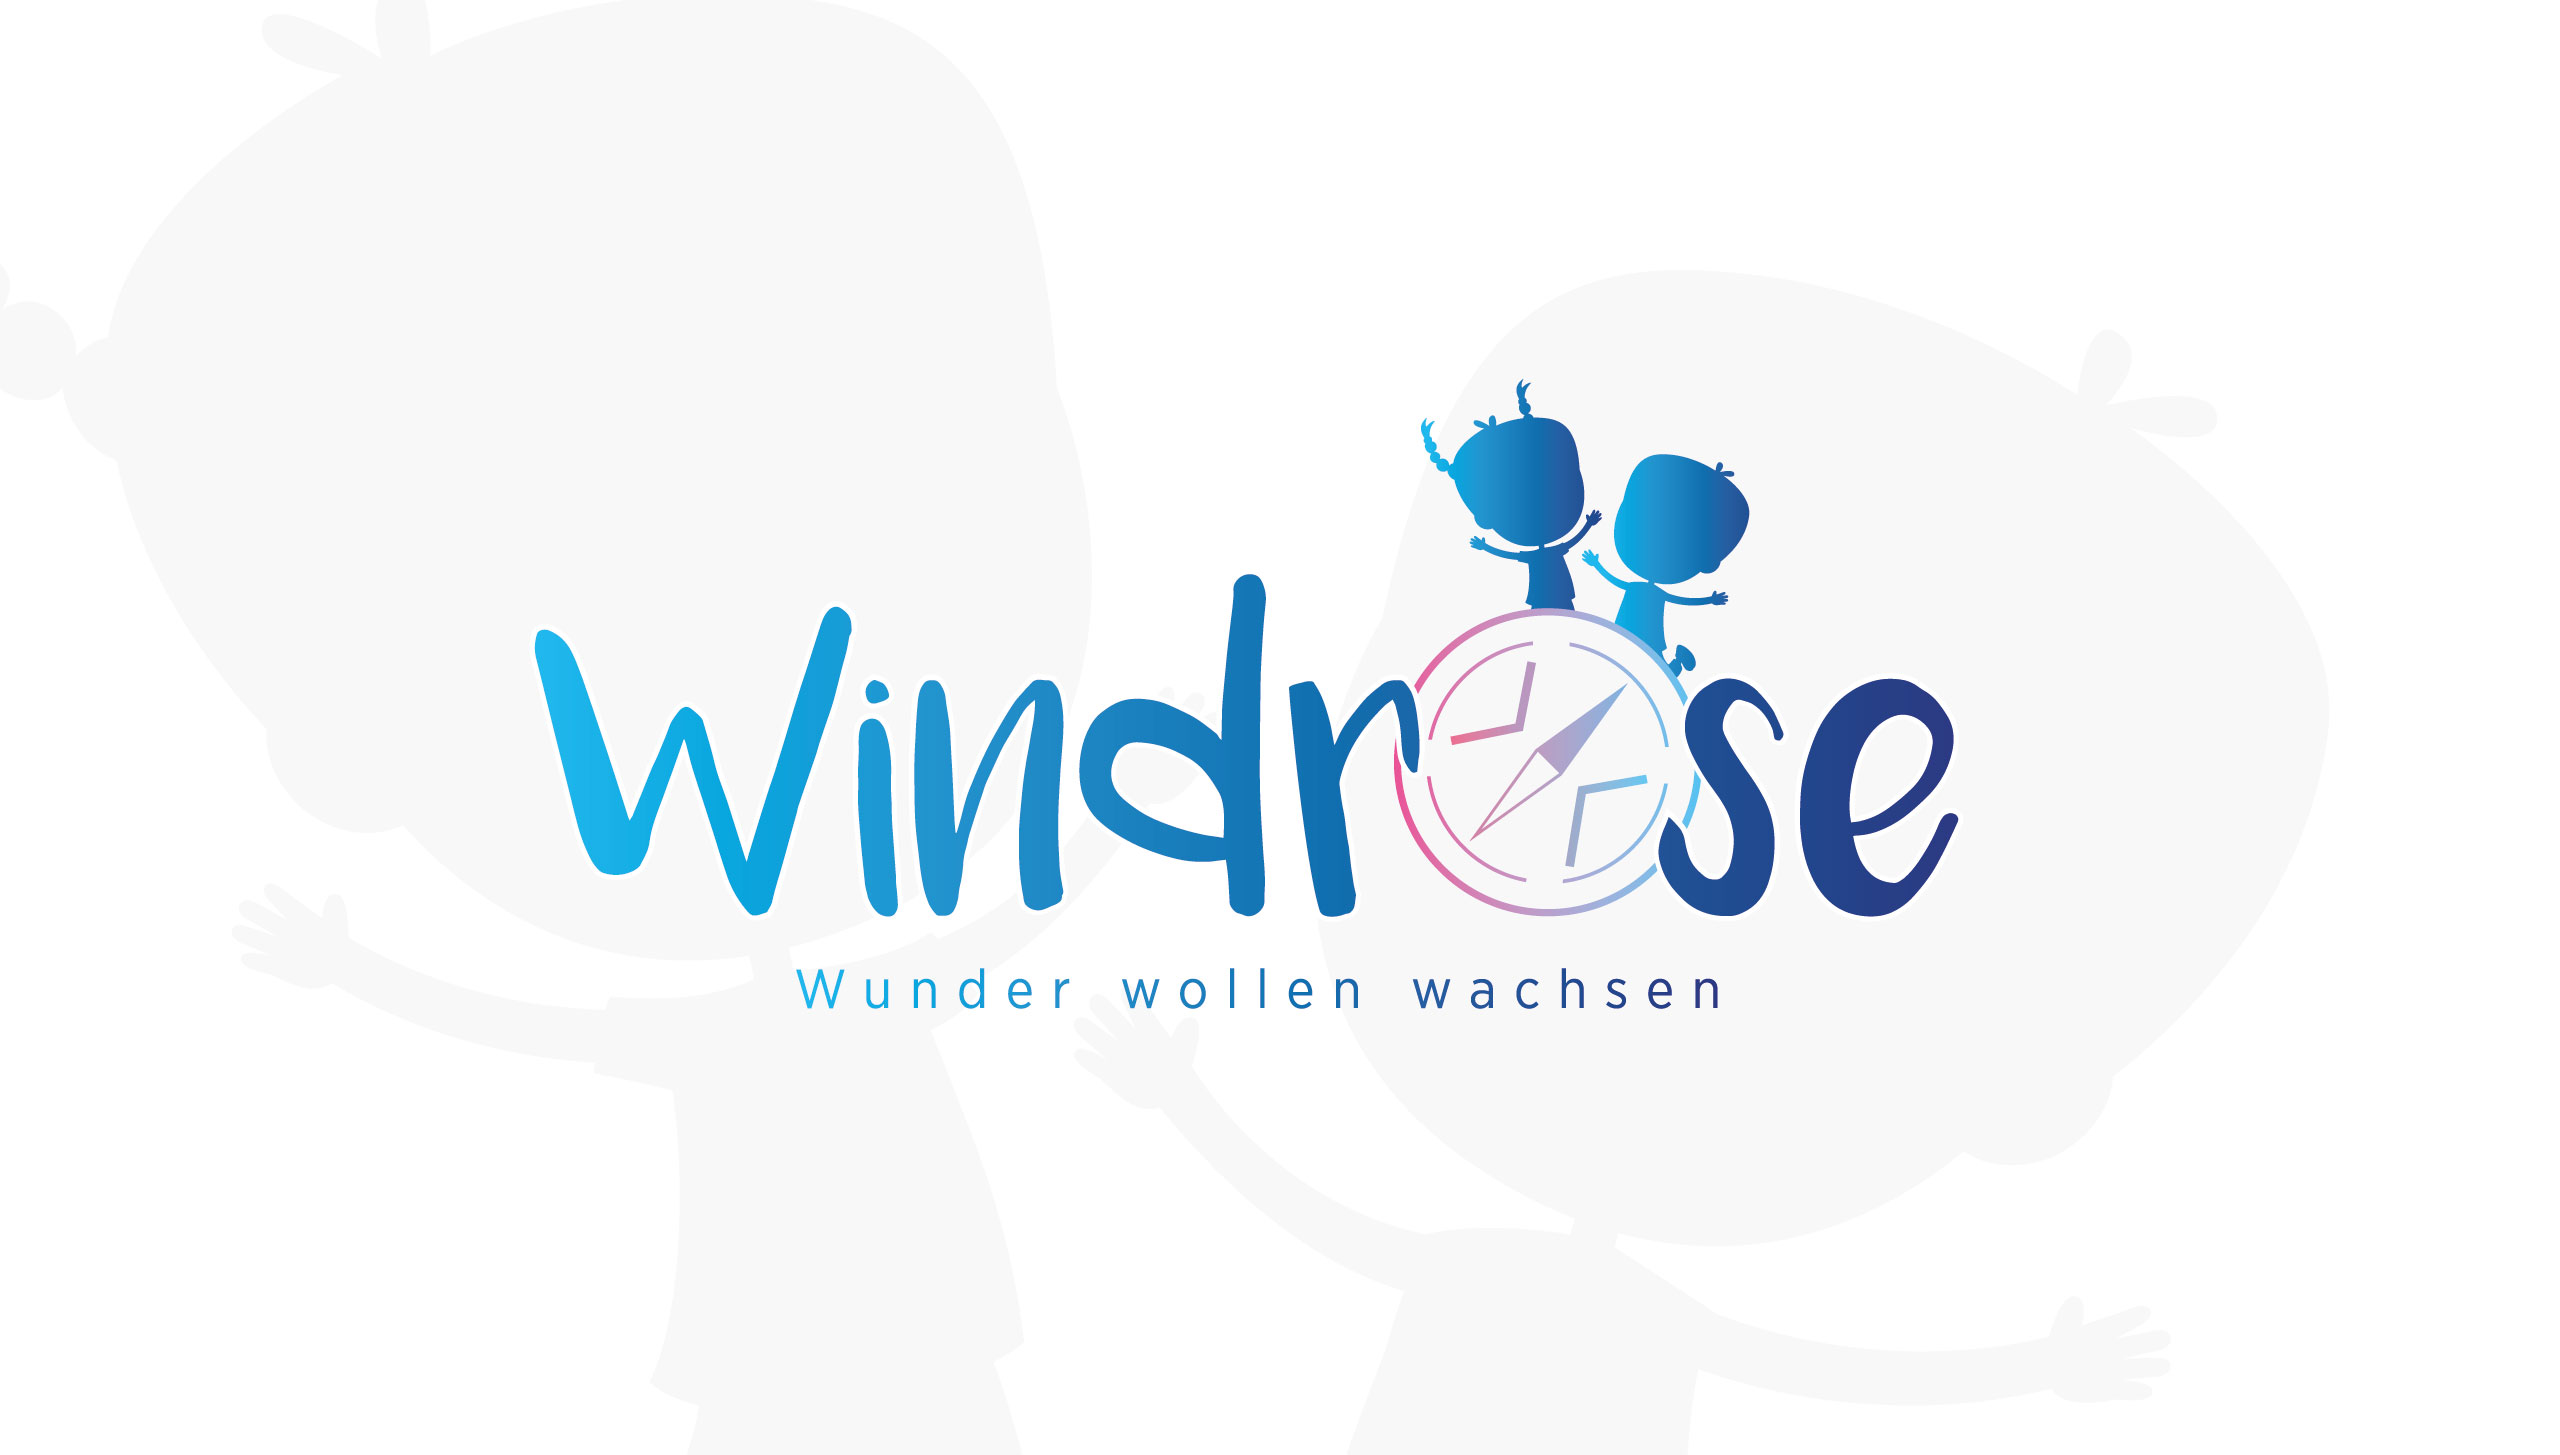 Windrose Referenz-Bild-01